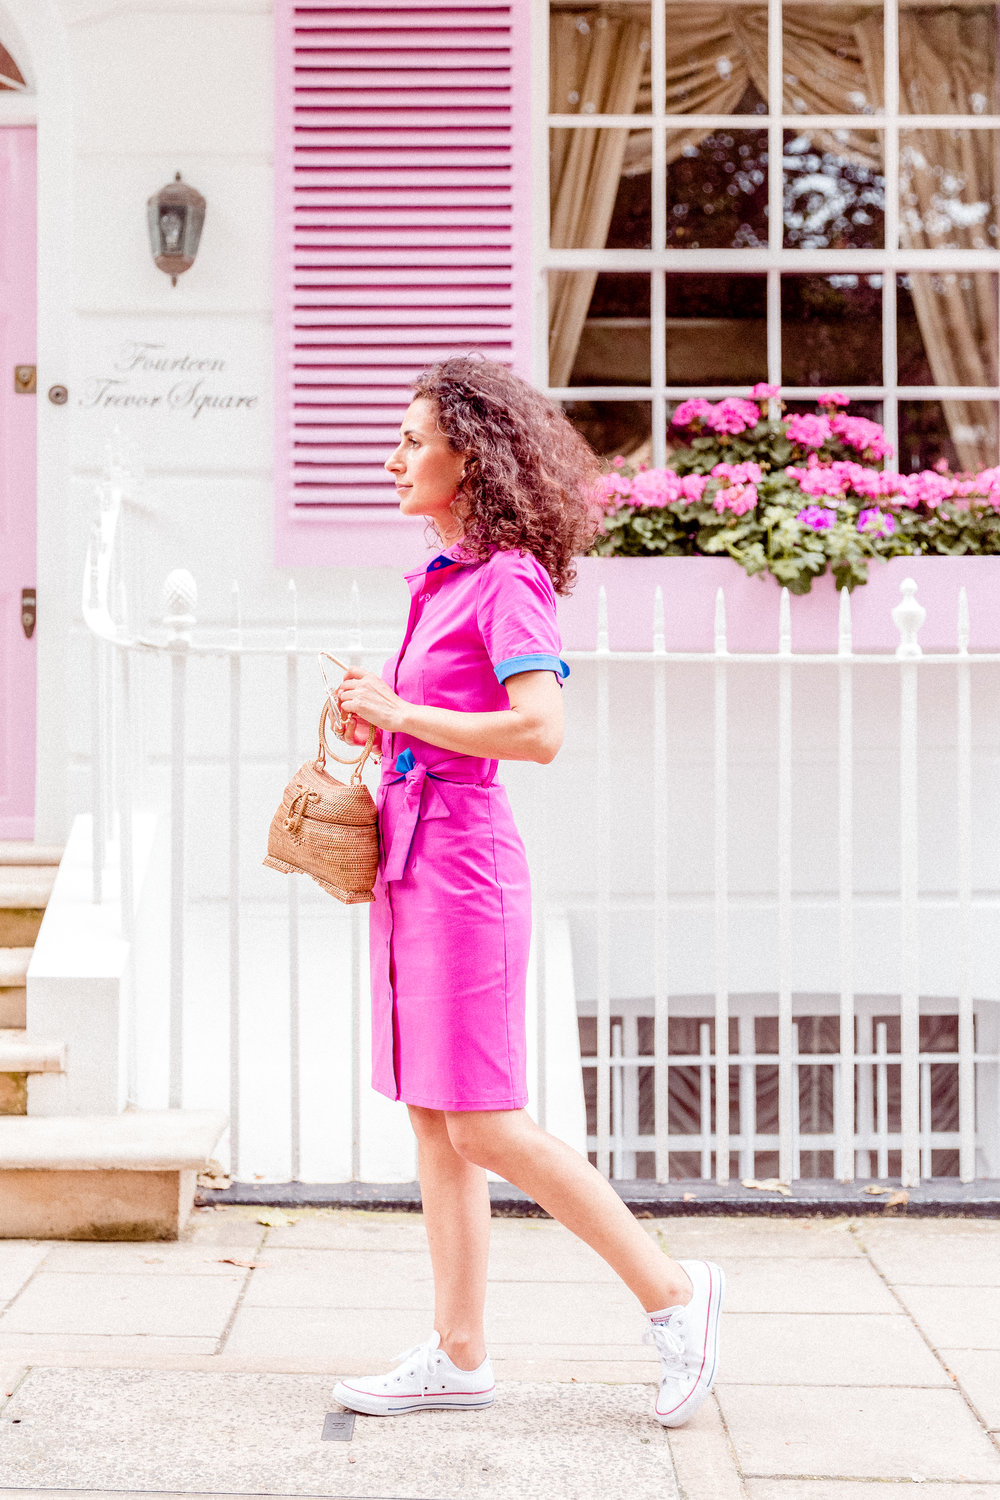 BUTTON UP YOUR DRESS IN FUCHSIA - Hello! Good morning everyone! It's not always raining in London, the truth is that this year we have the prettiest Spring that I saw here, many sunny days, yes of course, too many cloudy as today too! 😂...